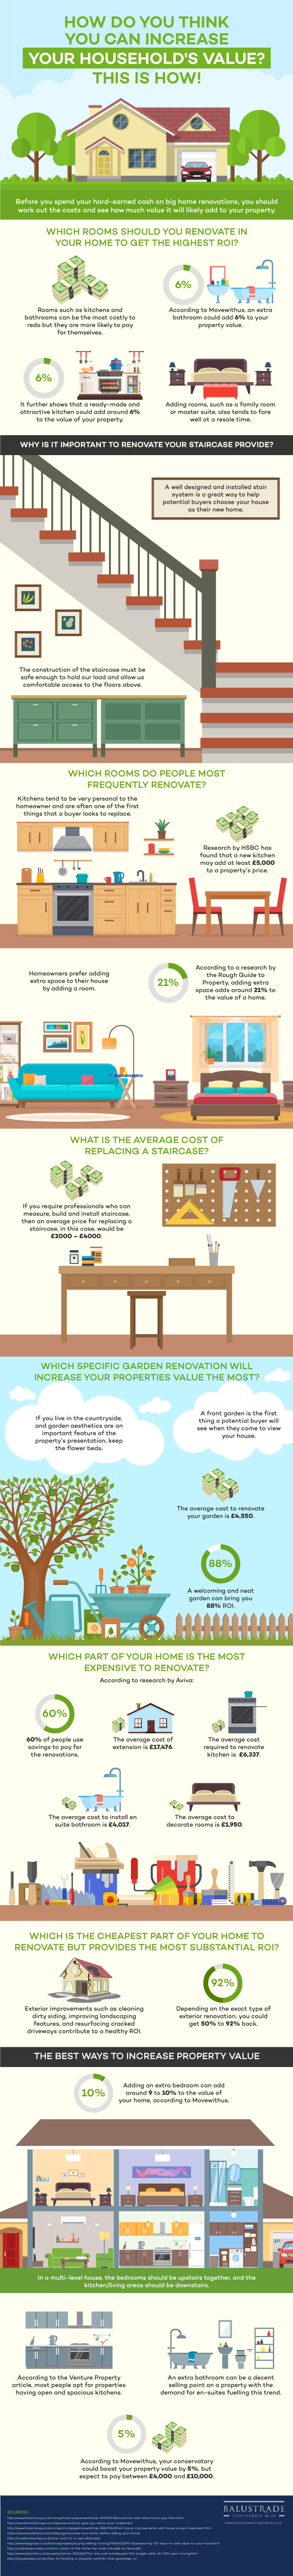 How you can increase your household's value? (infographic)